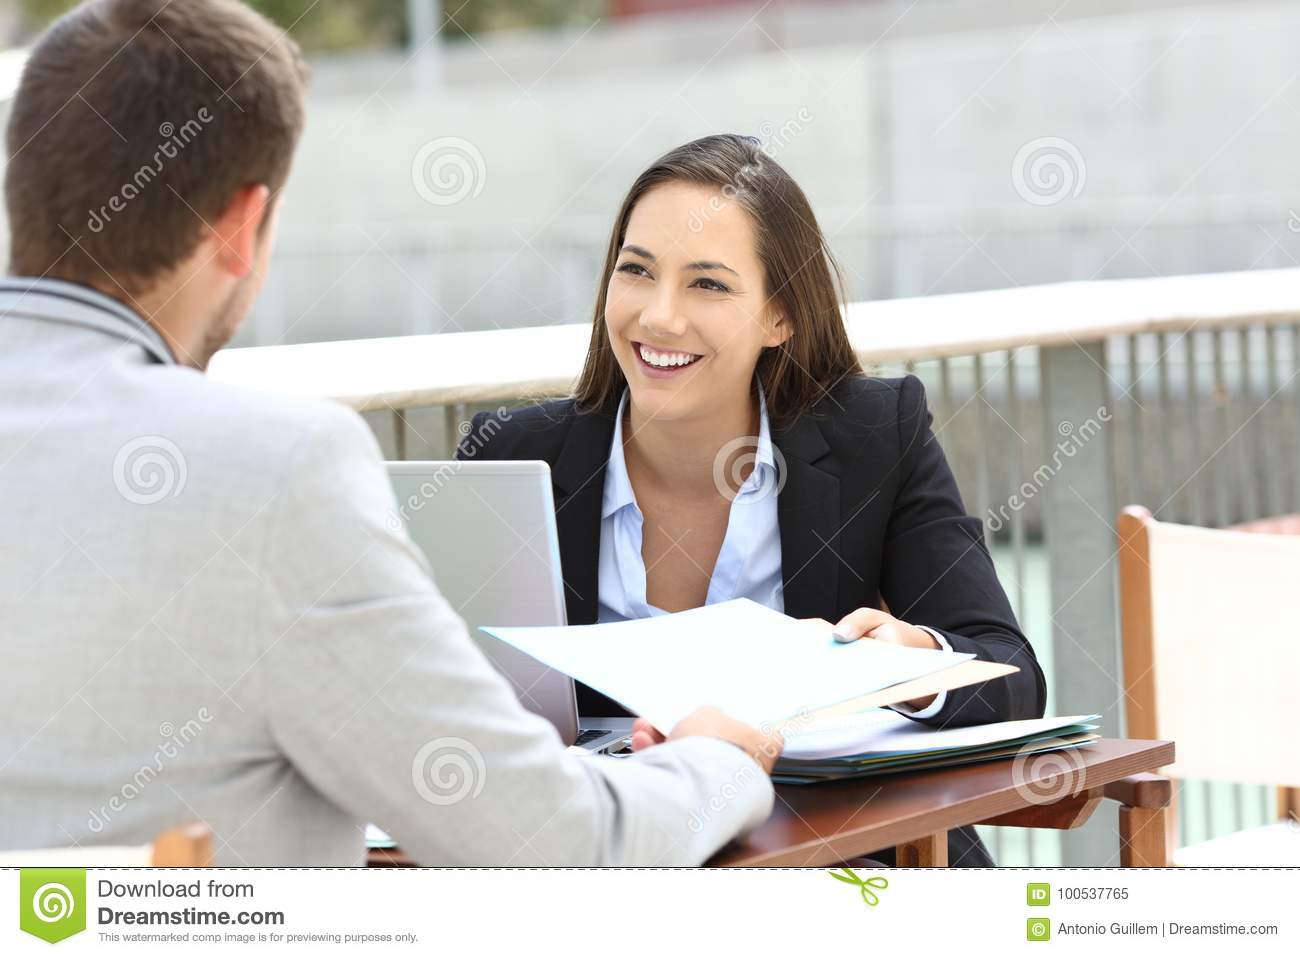 Two executives working sharing informs